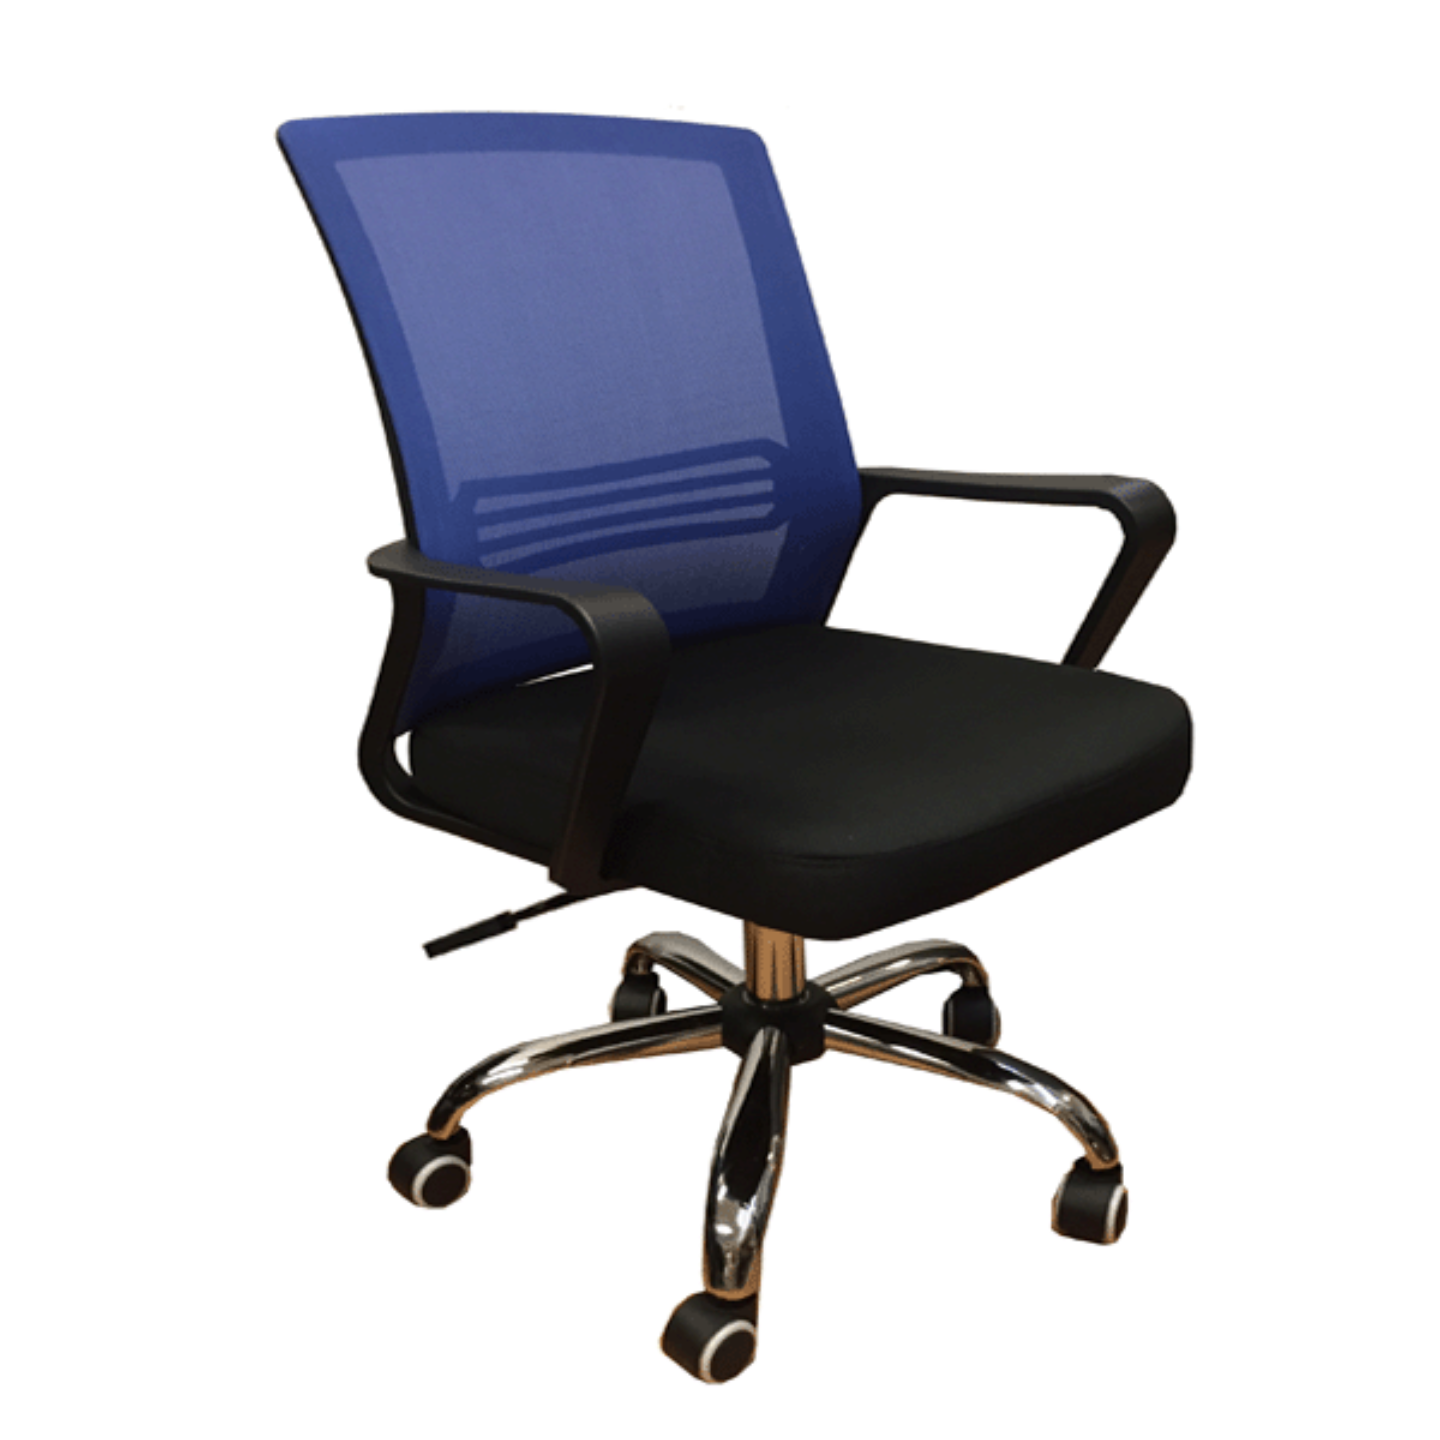 QUARTZ II Mesh Chair (Blue)